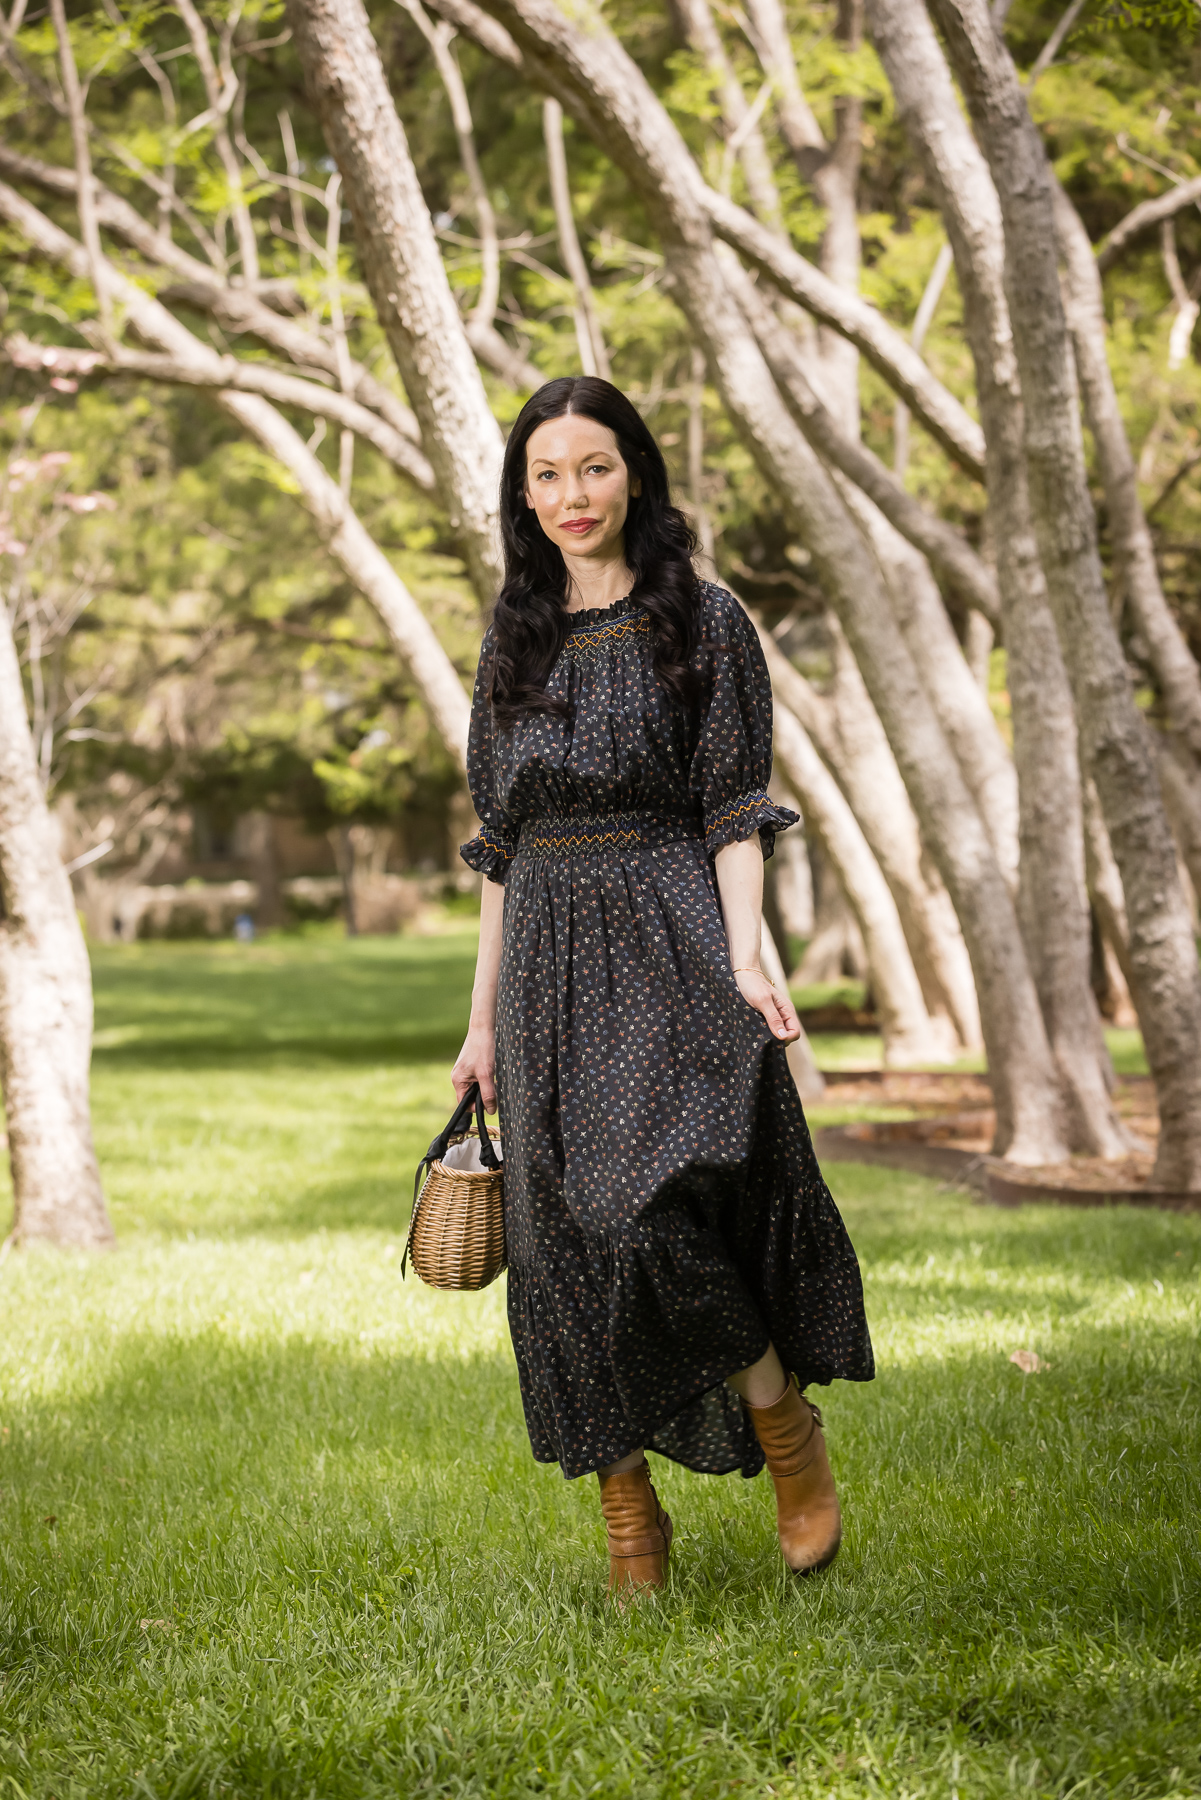 Doen Prairie Dress, Pixie Market Straw Bag, Brown Ankle Boots | Prairie Dress by popular Dallas fashion blog, Pretty Little Shoppers: image of a woman walking outside on some grass under some trees and wearing a black Down prairie dress, tan boots, and holding a woven handbag.